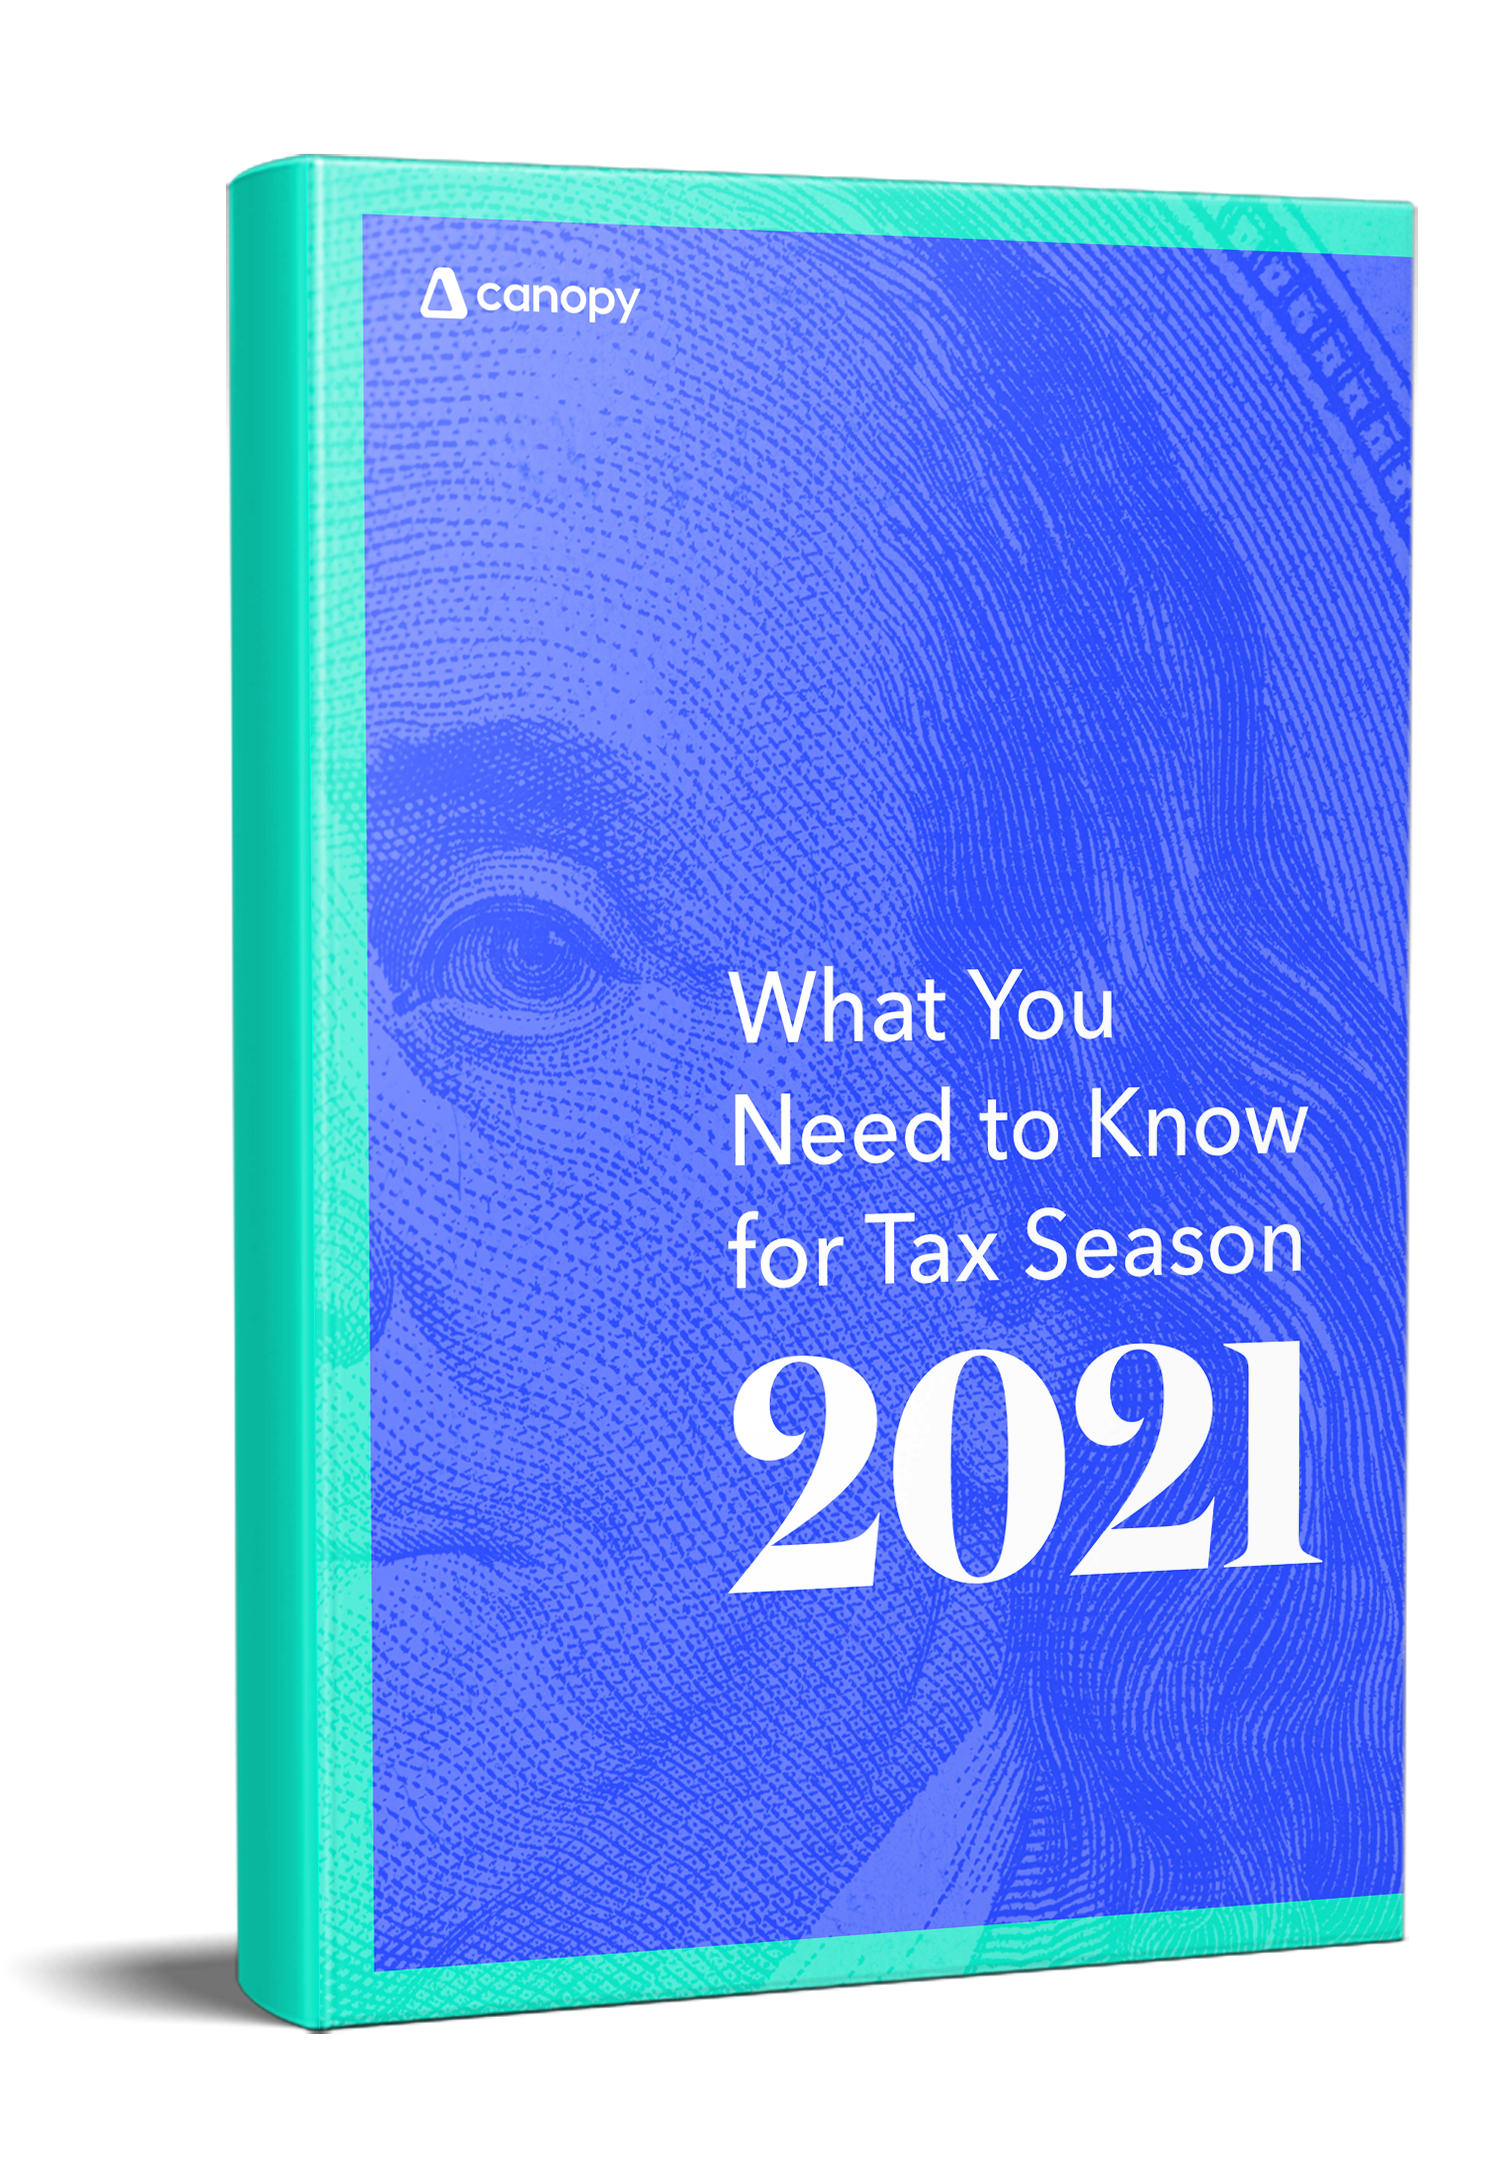 What You Need to Know for Tax Season 2021 | Canopy